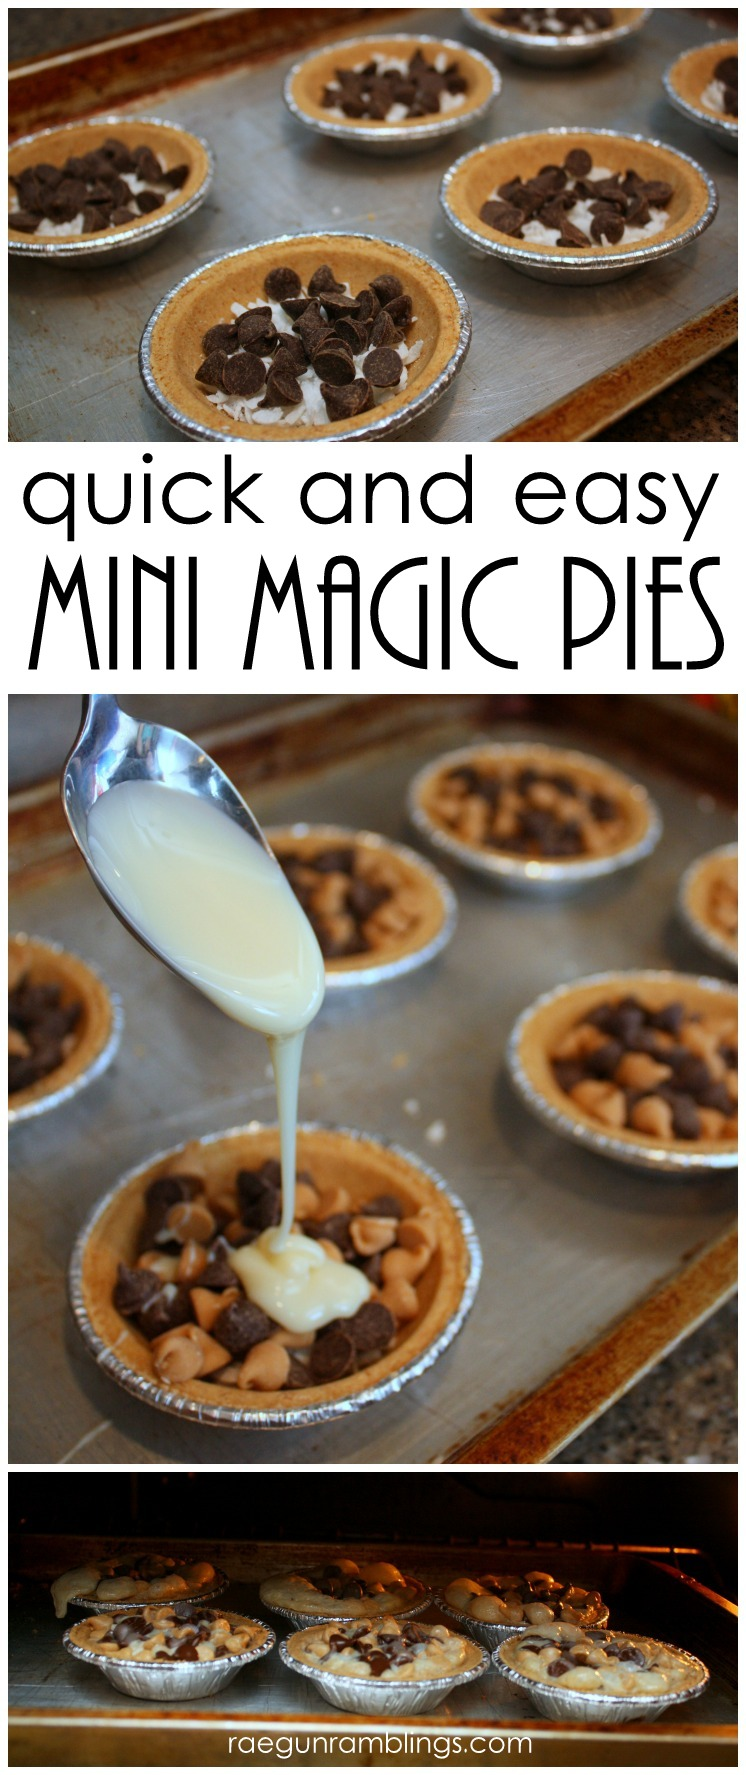 easiest tasty coconut magic pies recipe.